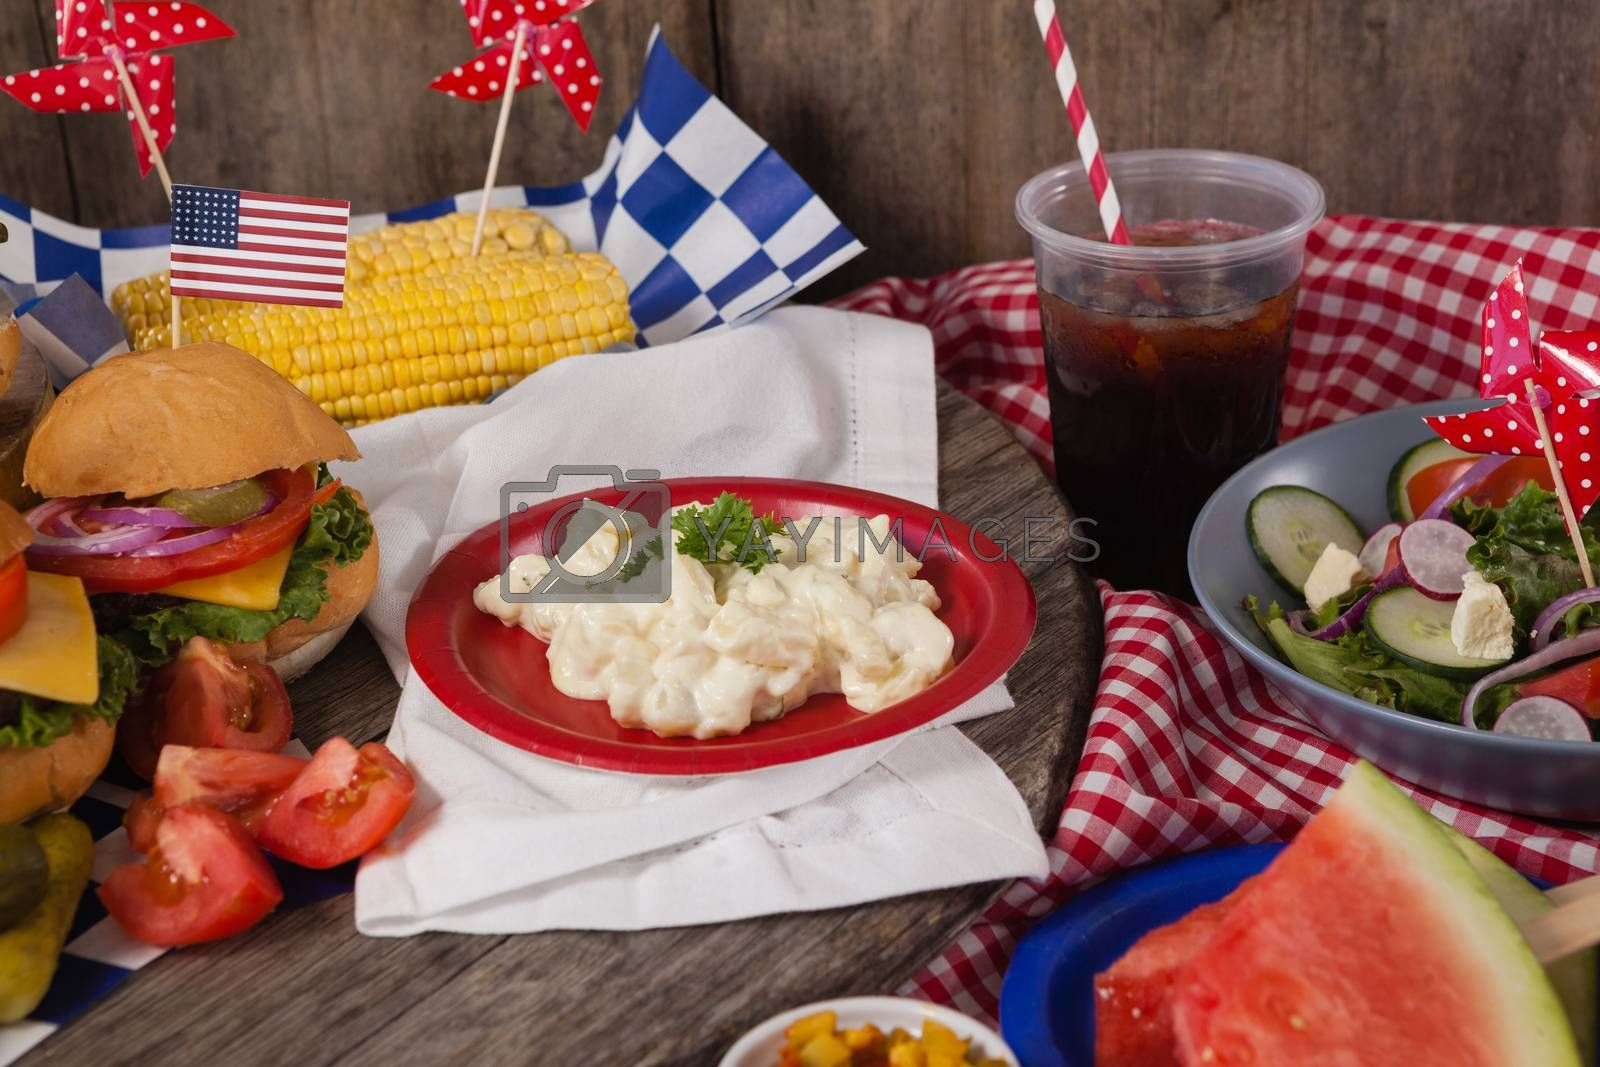 Snacks and cold drink decorated with 4th july theme on wooden table